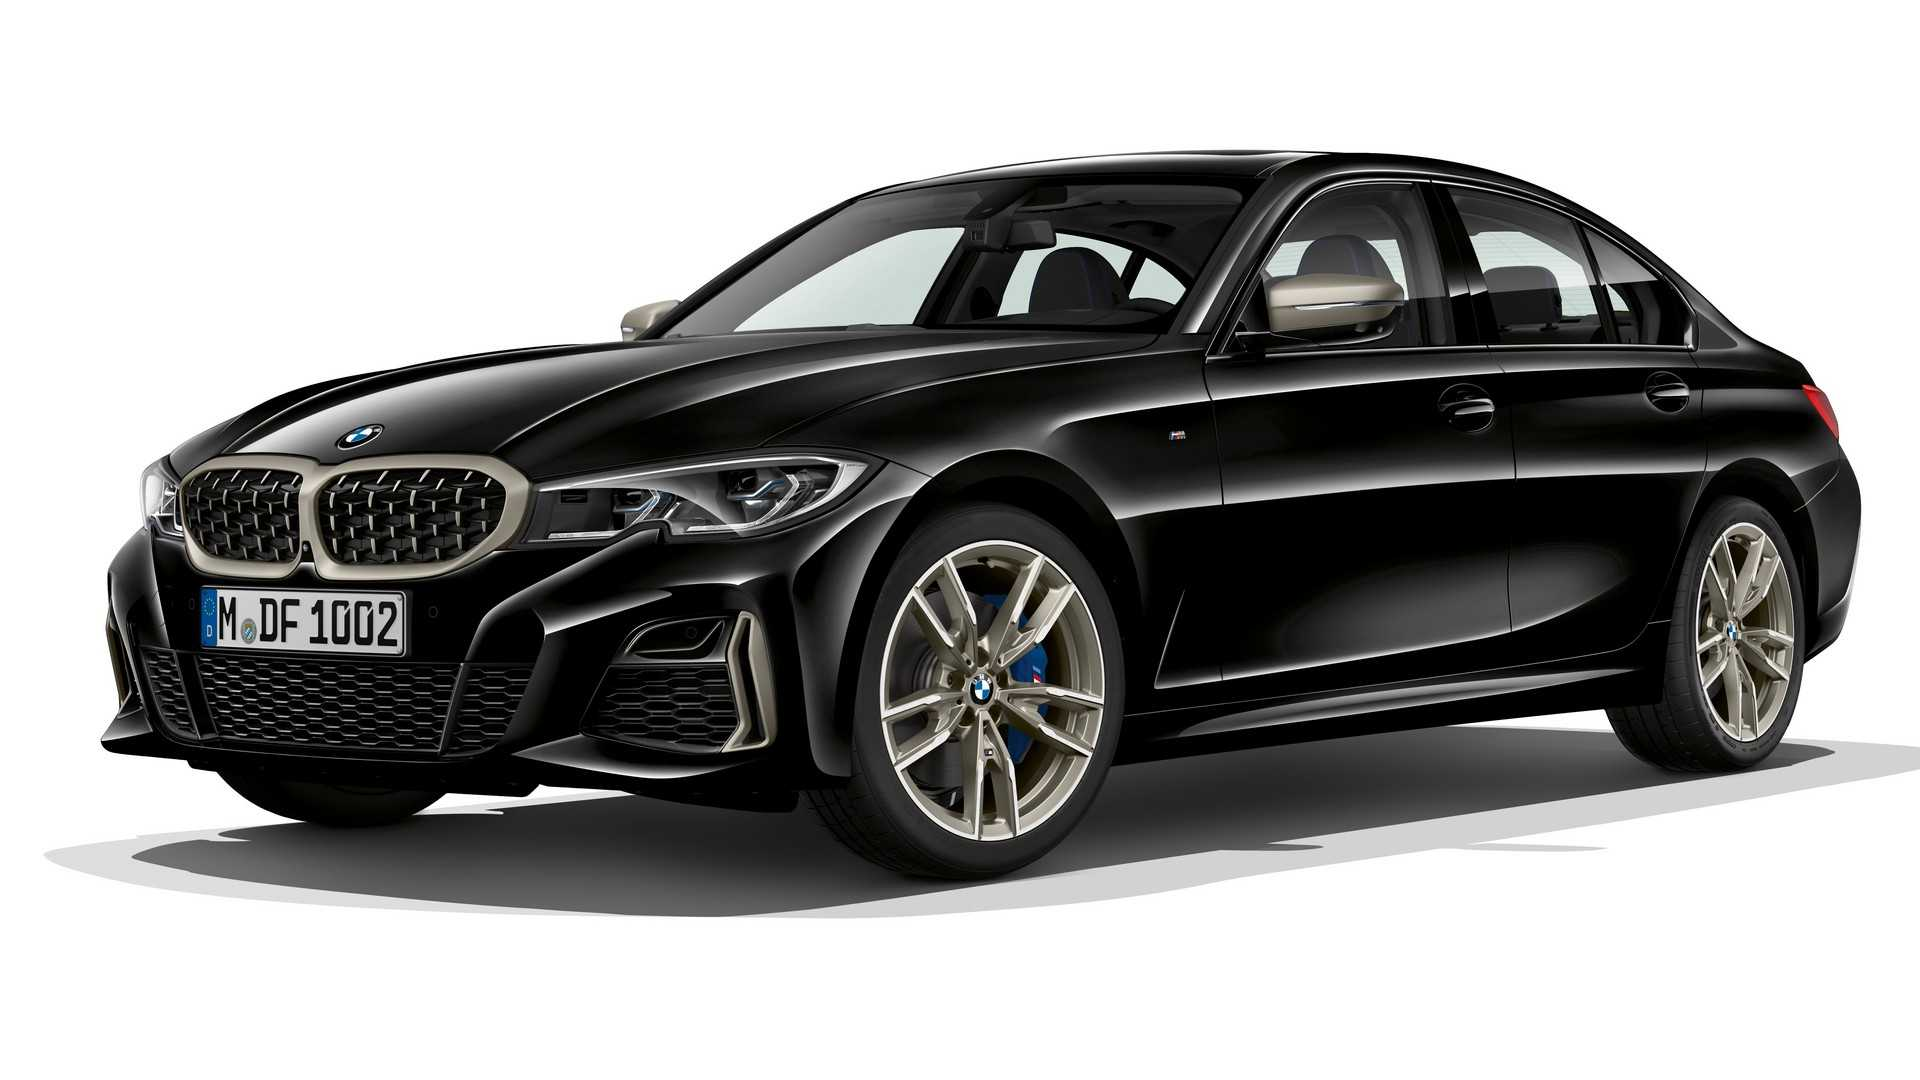 84 The 2019 Bmw M340I Specs And Review